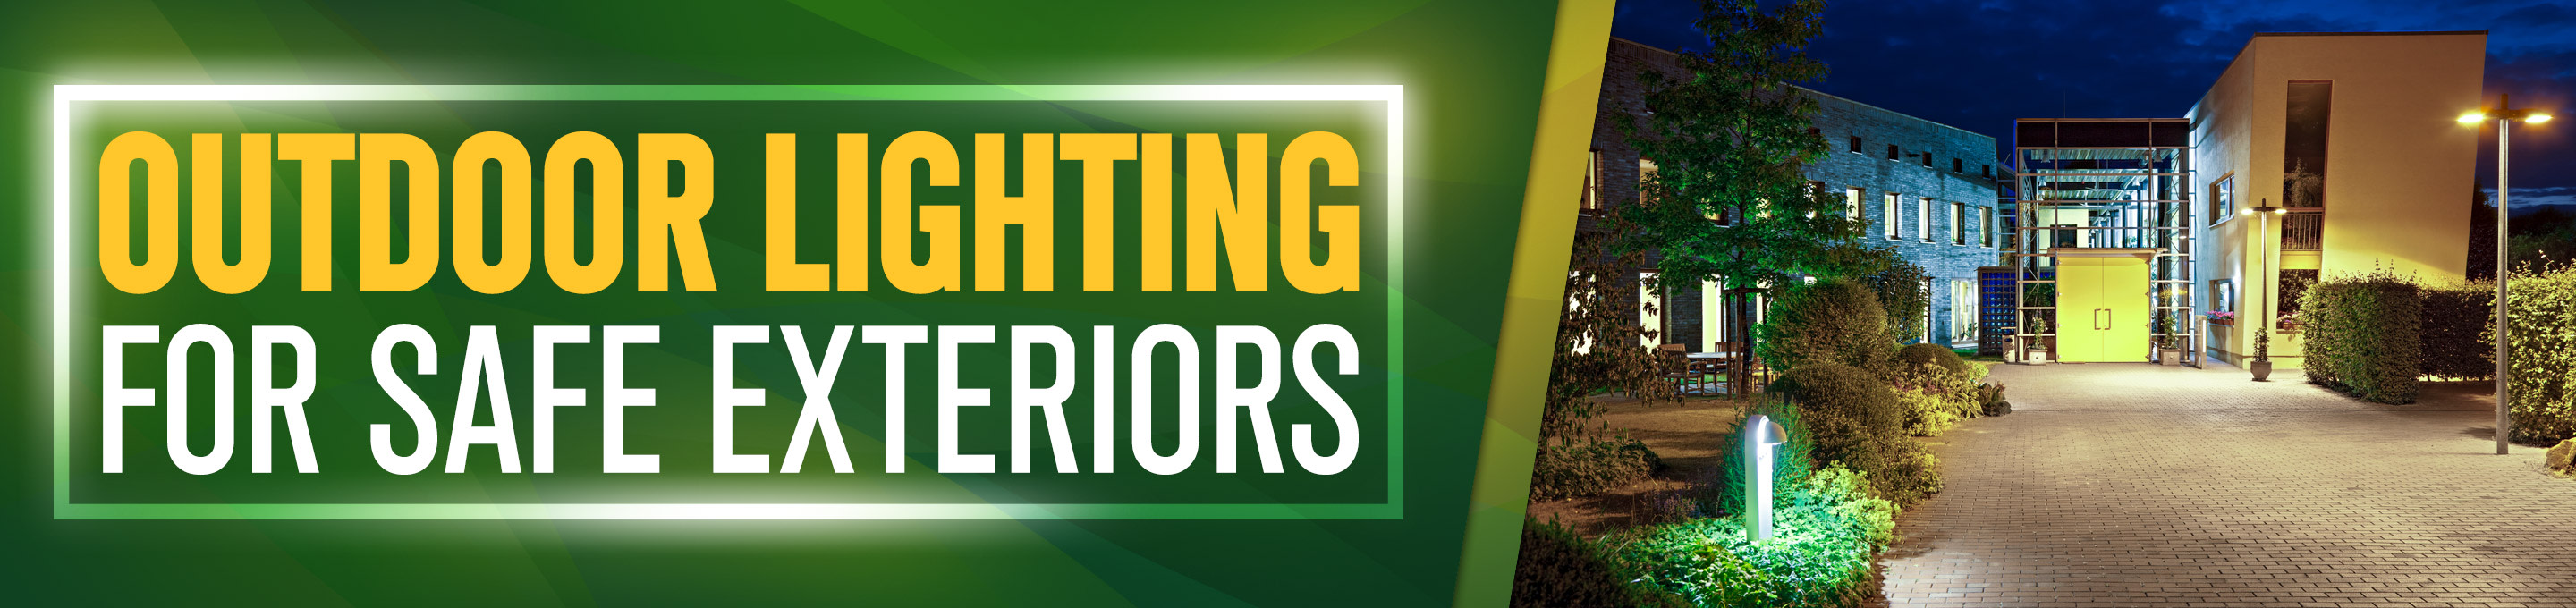 Outdoor Lighting for Safe Exteriors